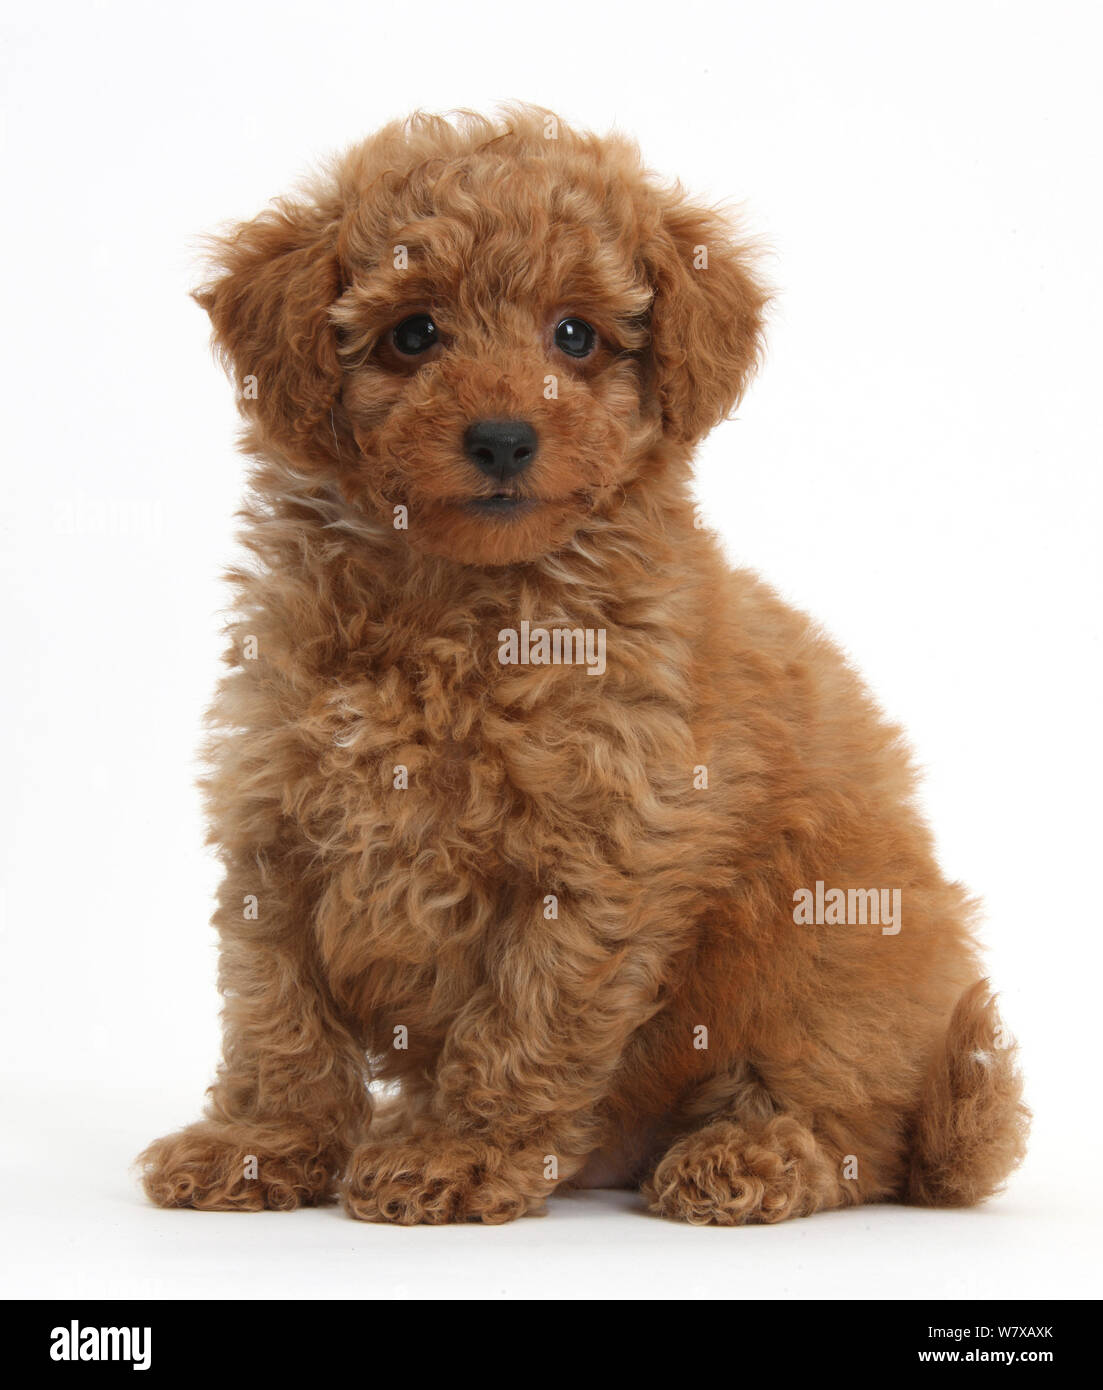 Cute Red Toy Poodle Puppy Sitting Stock Photo Alamy